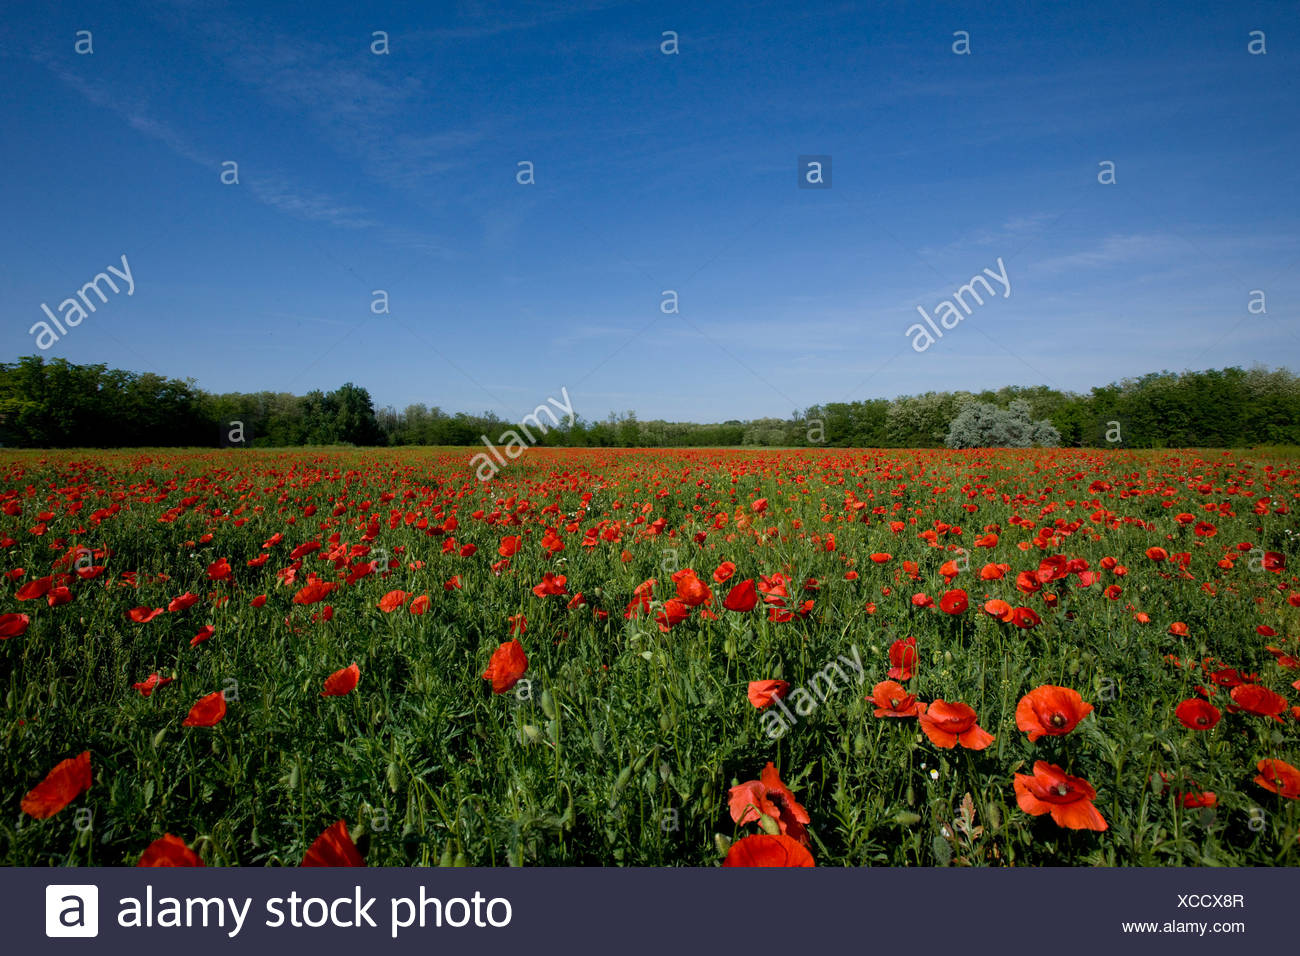 Corn poppy (Papaver rhoeas) flowers blooming in field, Hungary - Stock Image